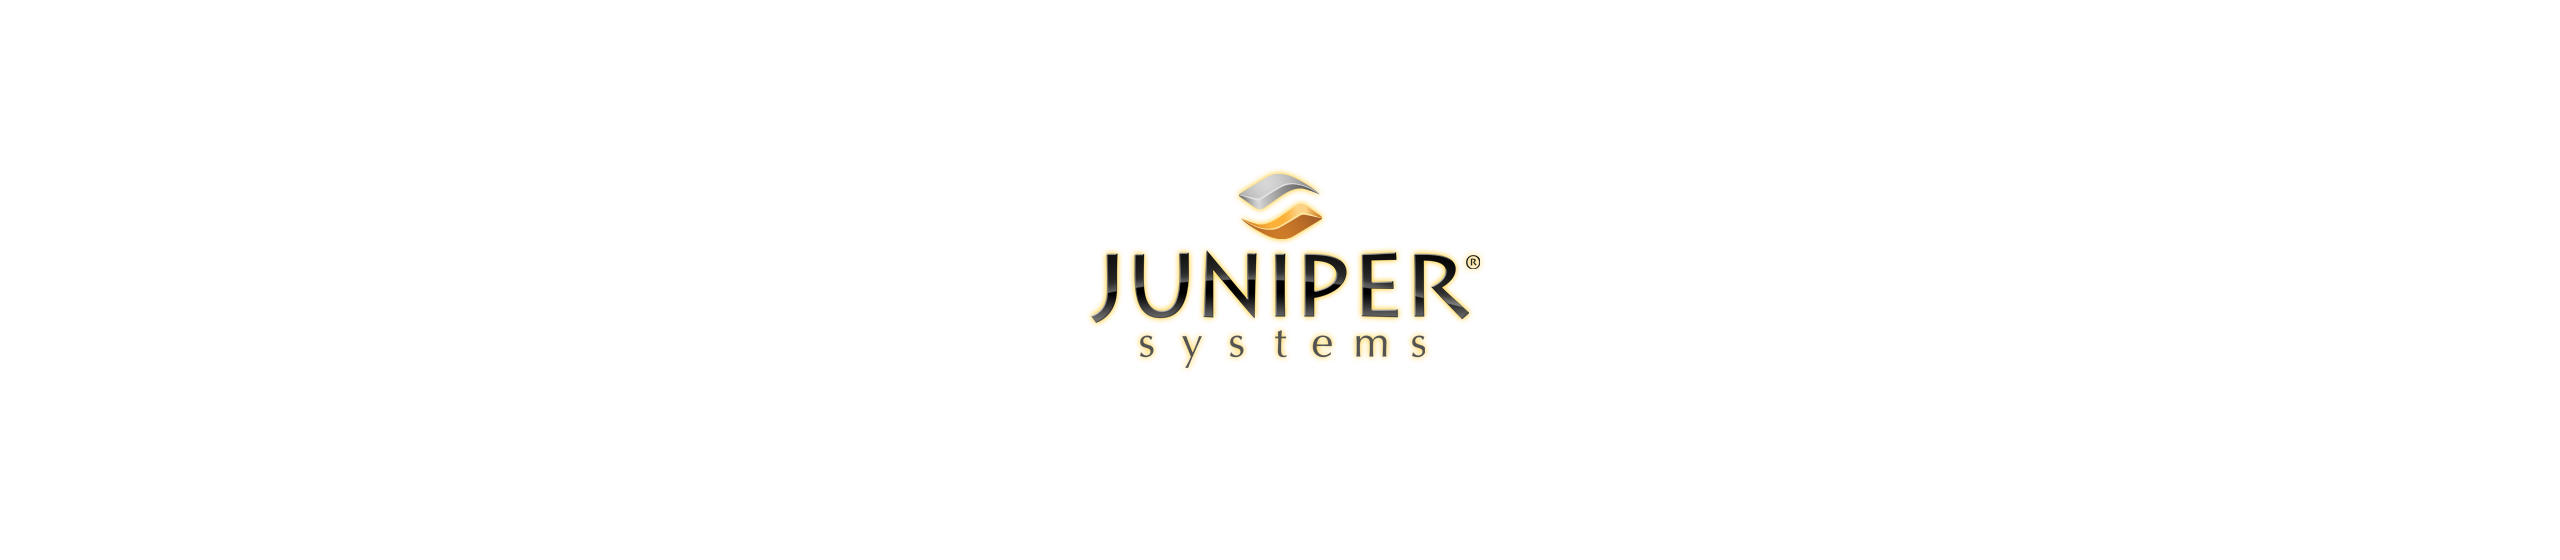 Juniper Systems Logo